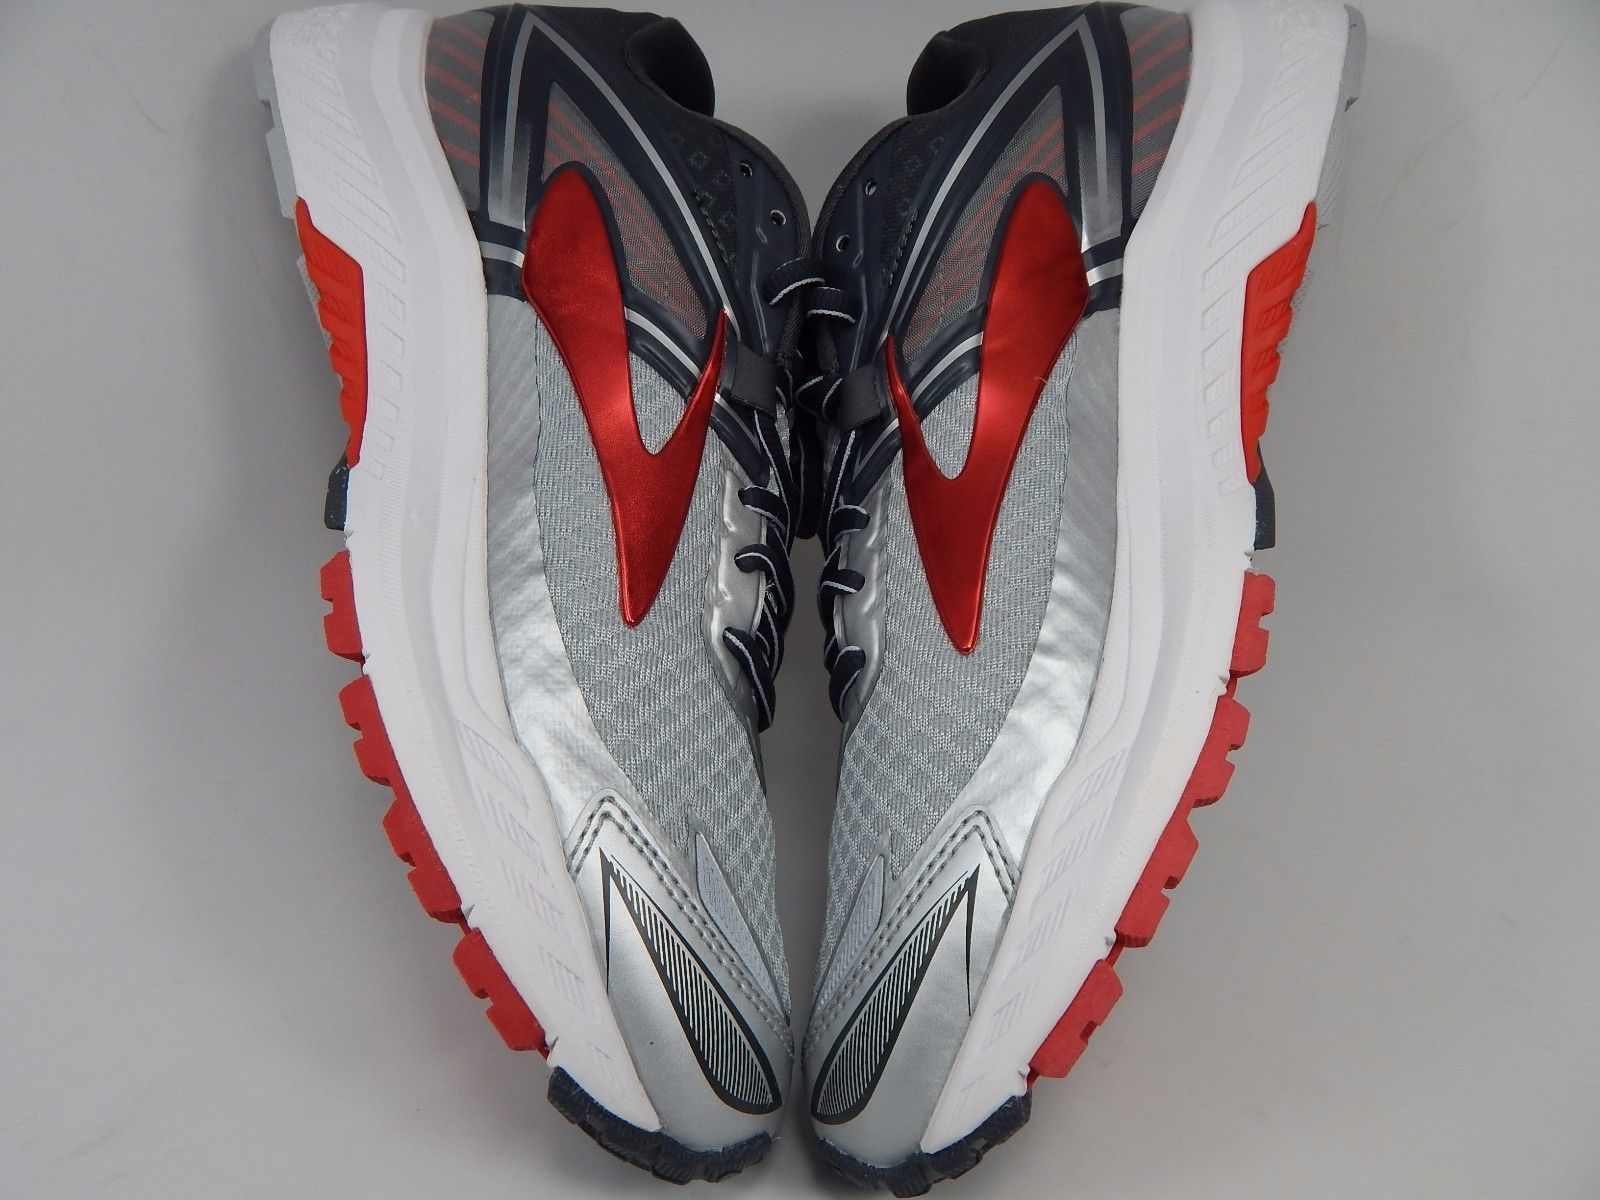 Brooks Ravenna 8 Men's Running Shoes Size US 8.5 M (D) EU 4 Silver 1102481D067